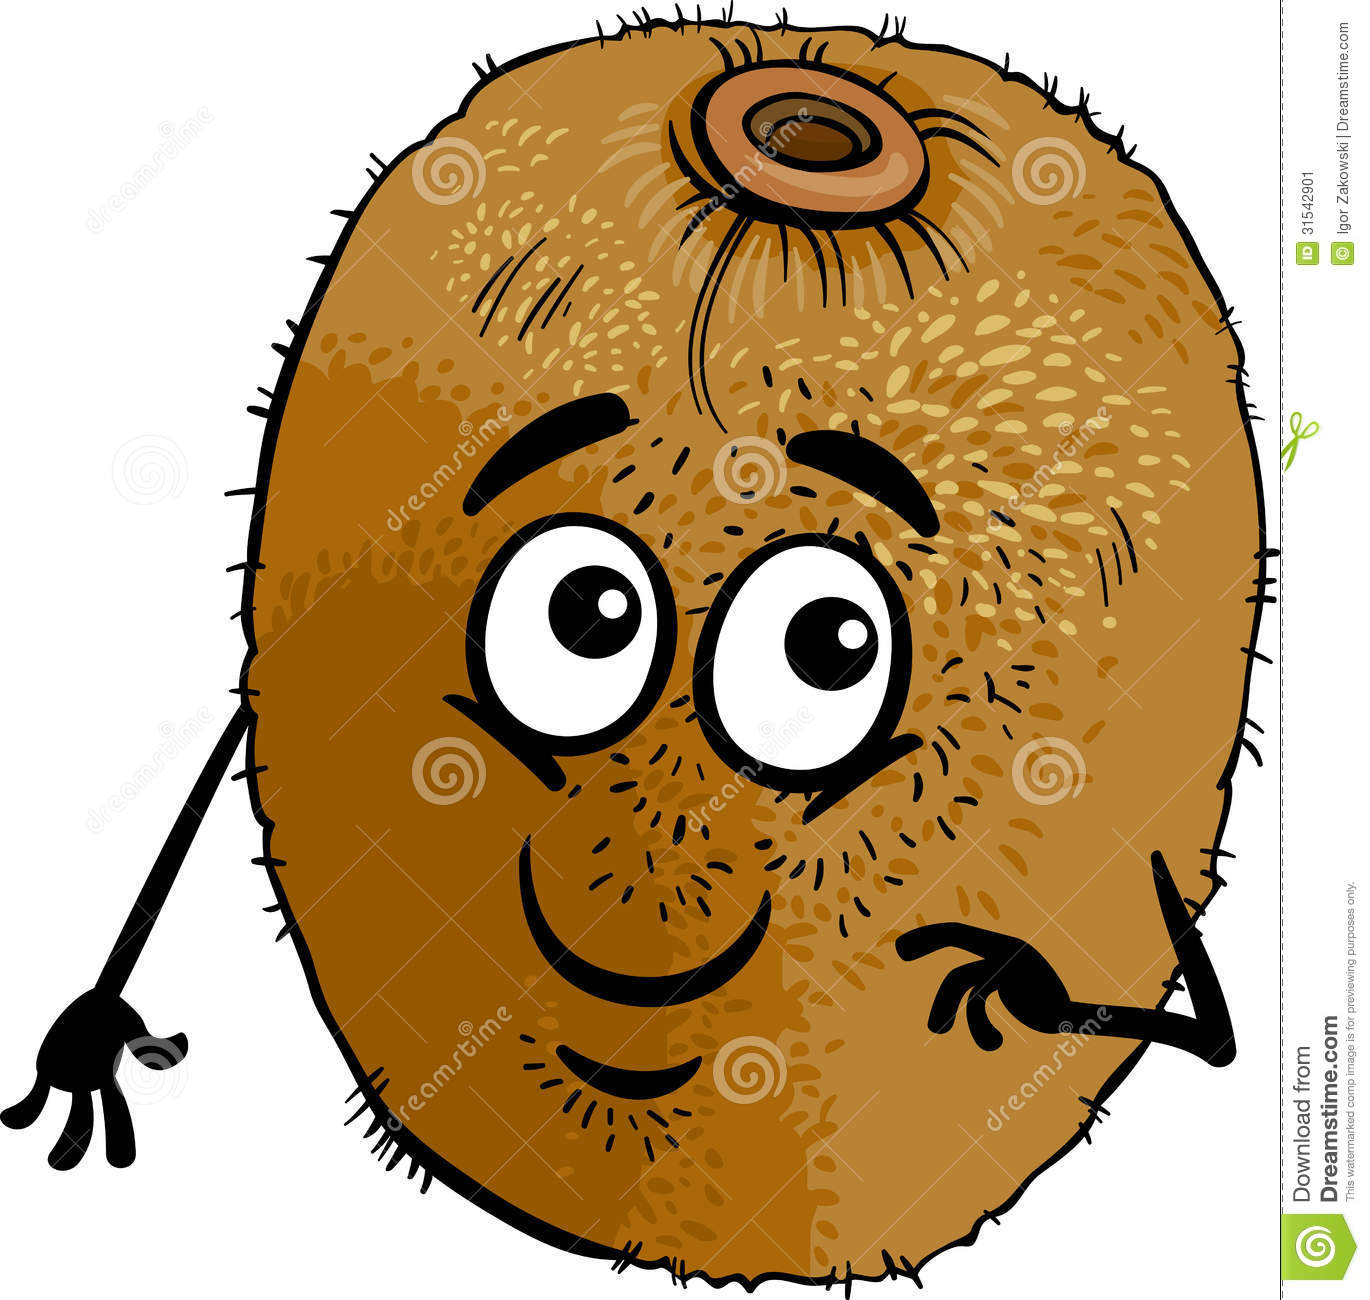 Funny Kiwi Fruit Cartoon Illustration Stock Image - Image: 31542901